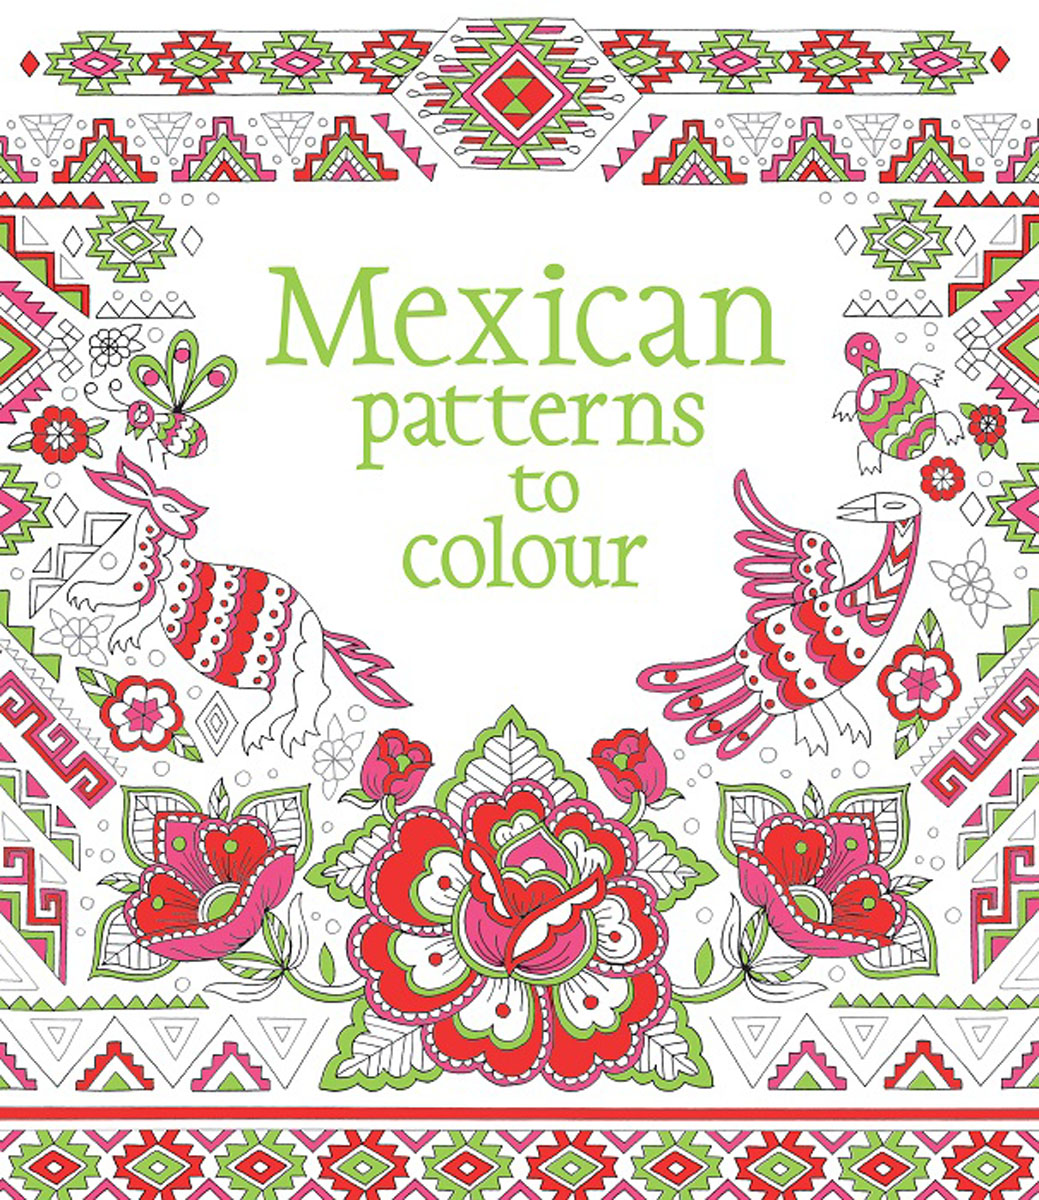 Mexican Patterns to Colour an investigation into food consumption patterns